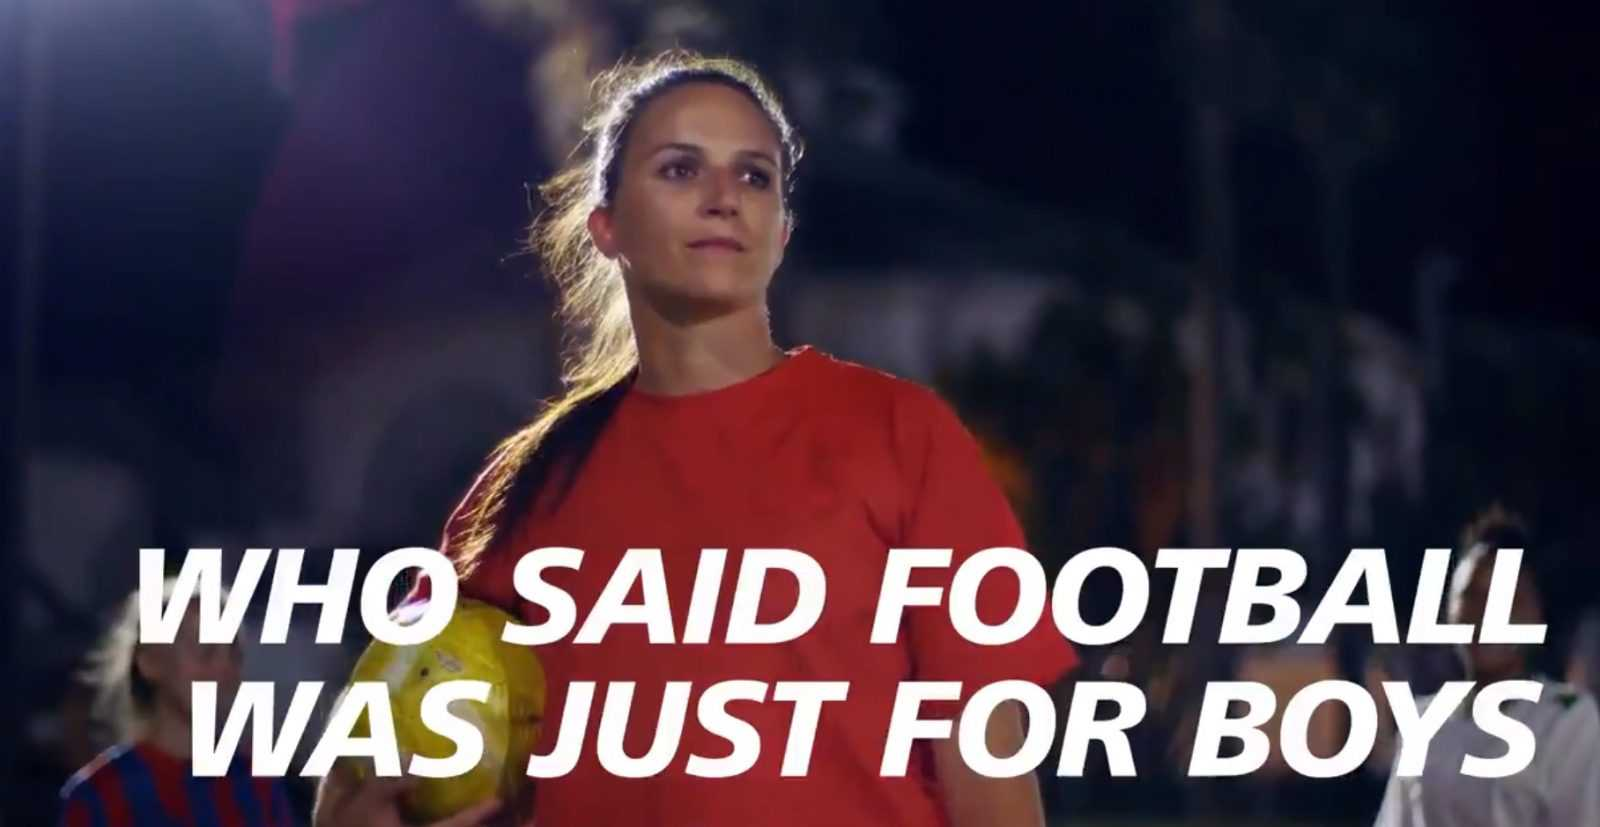 FIFA Women World Cup 2019: FIFA breaks societal norms with thought provoking video